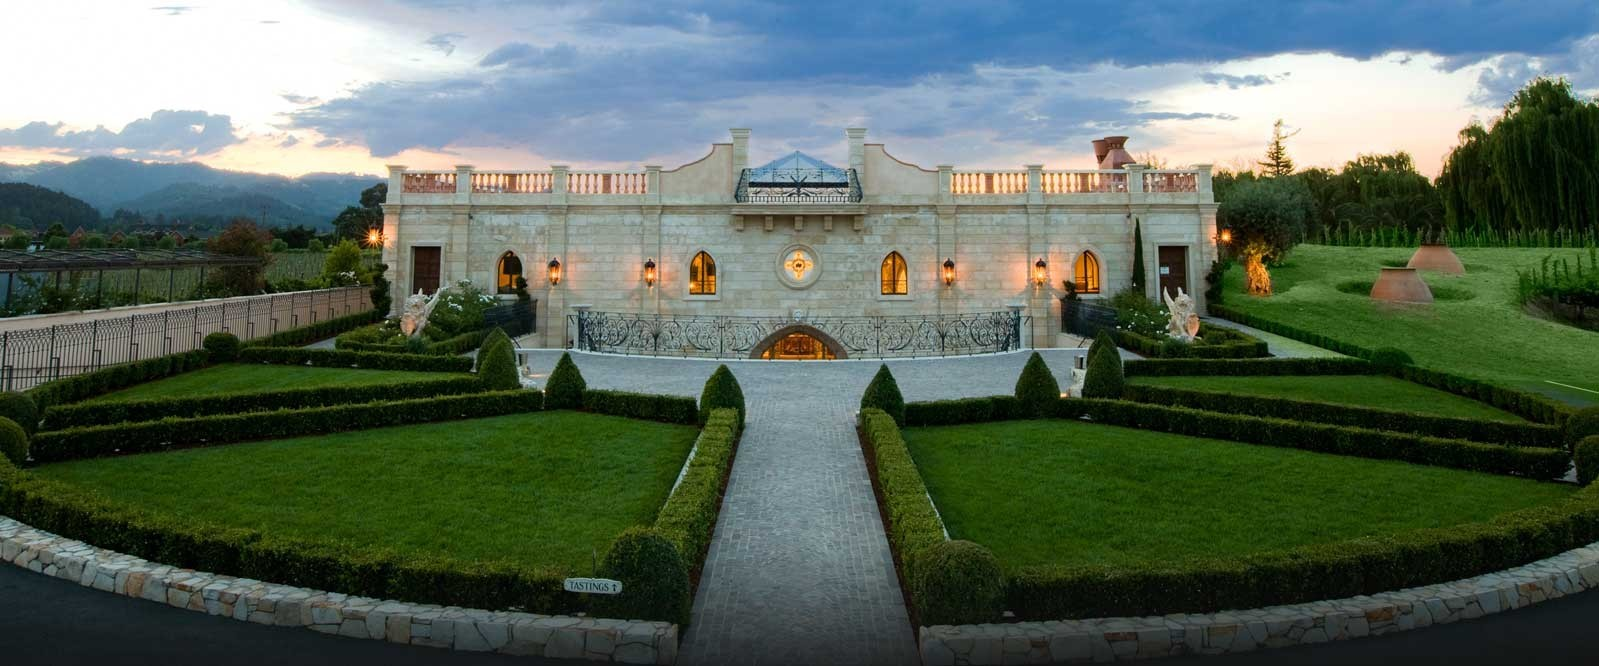 Best Napa Valley Wineries For Tasting Room Experience